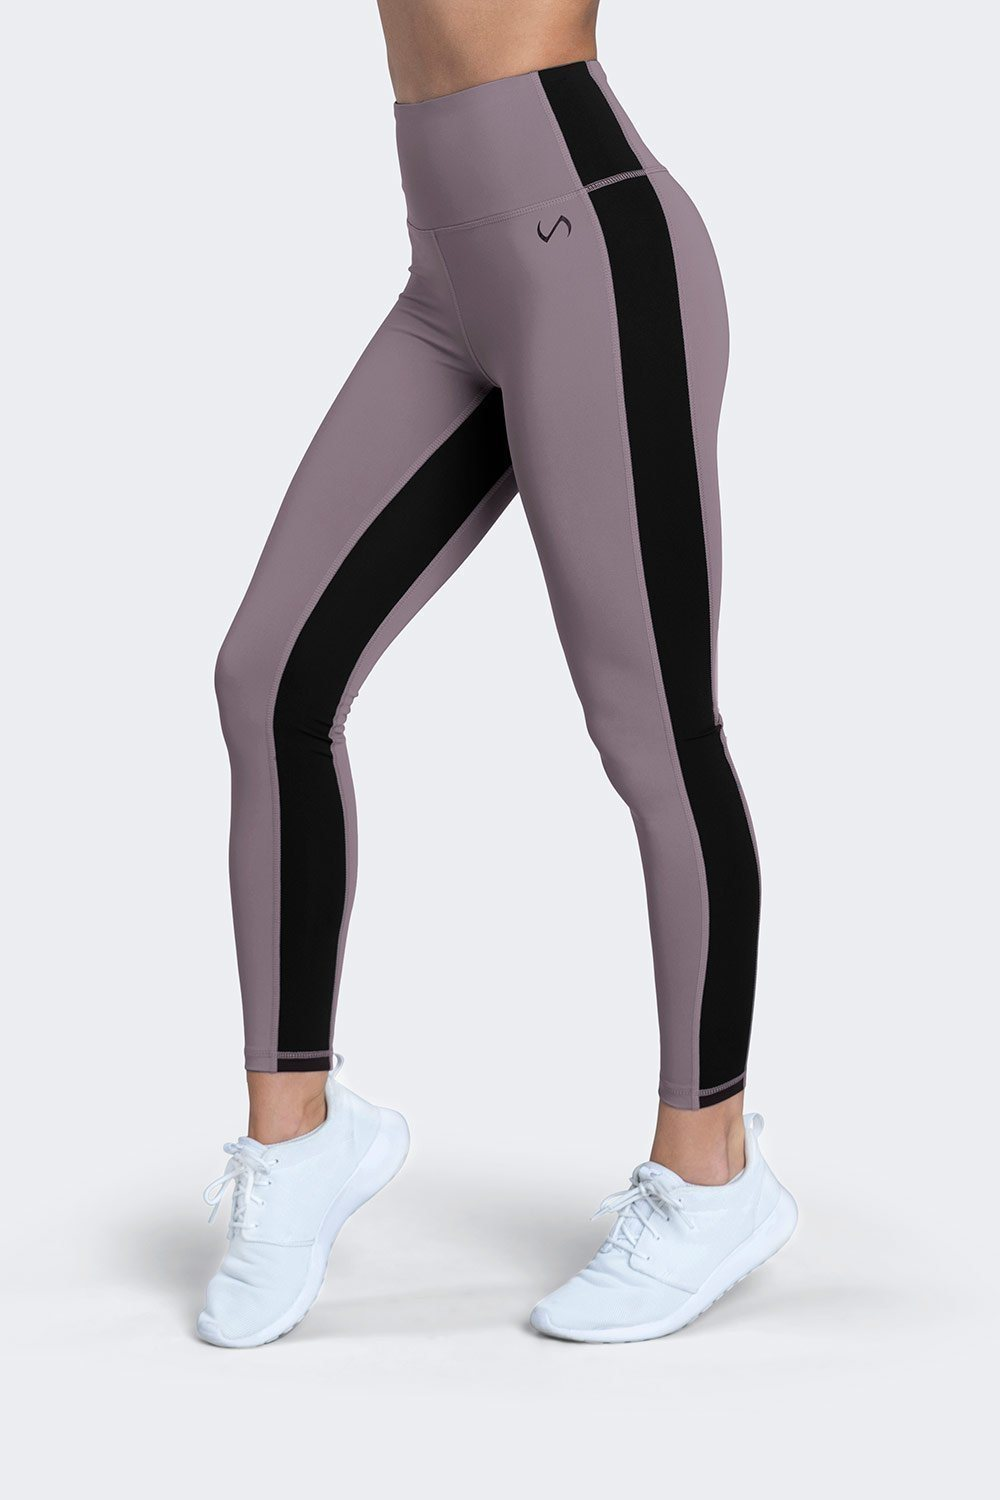 TLF Alena 7/8 Legging - Leggings - TLF Apparel | Take Life Further